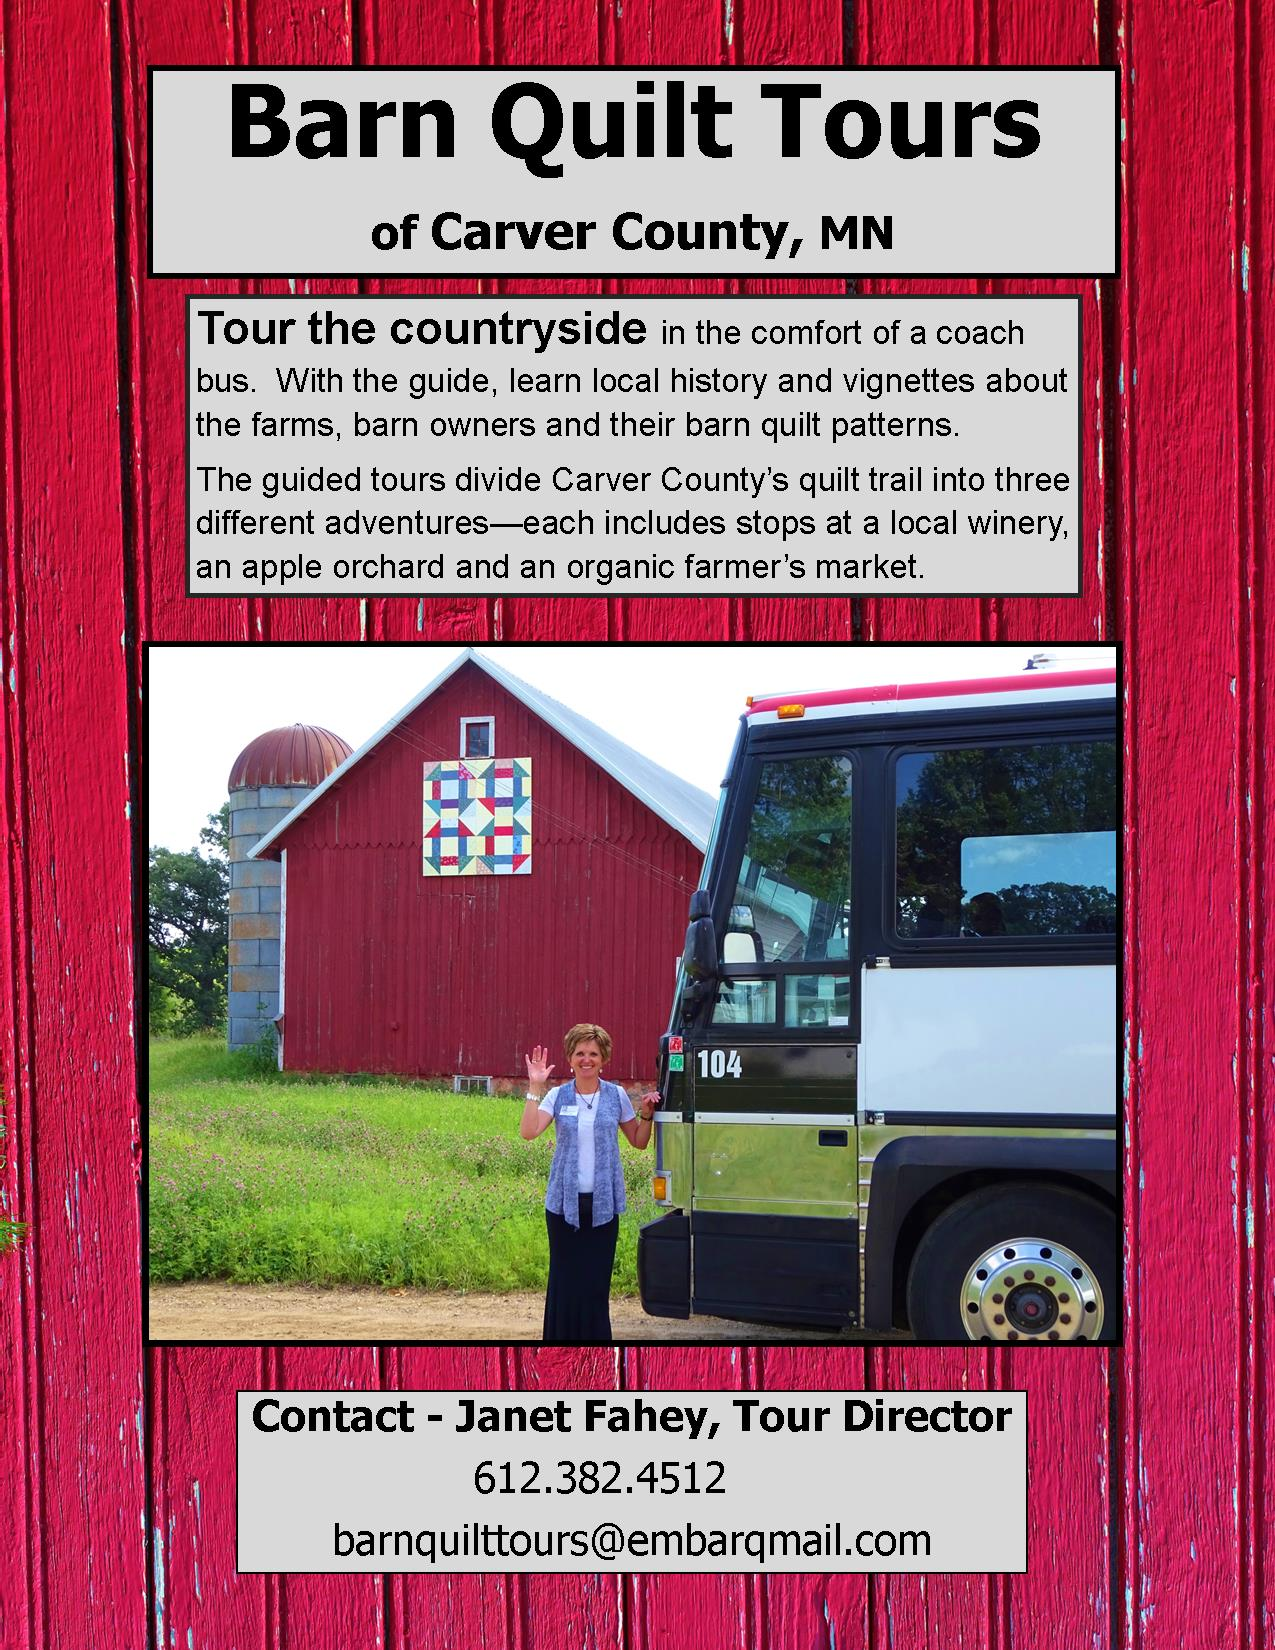 Barn Quilt Tours - Arts Consortium of Carver County